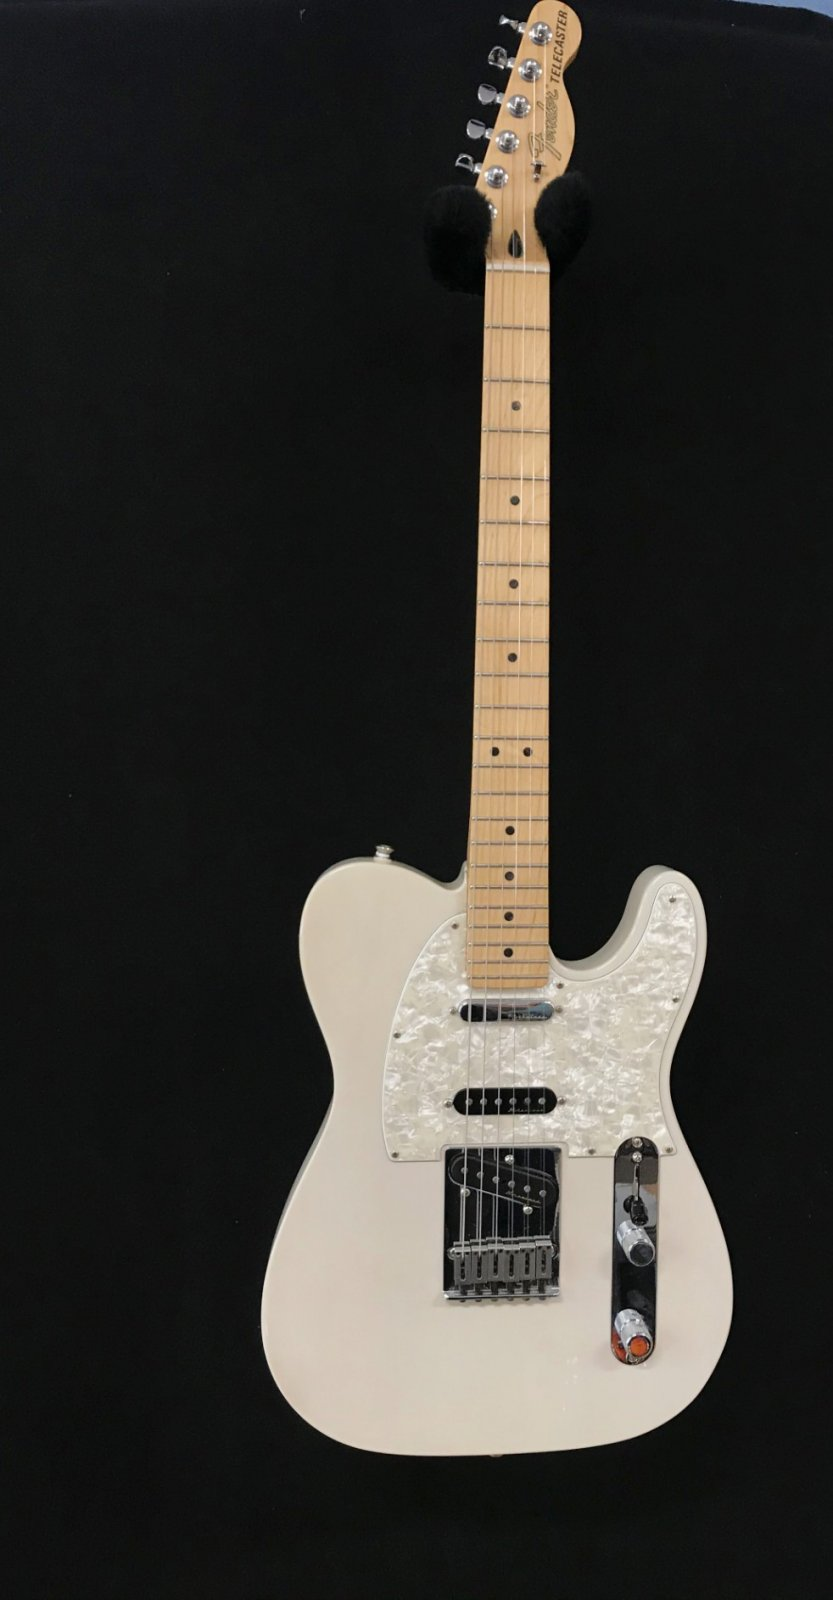 Used Fender Nashville Telecaster with Noiseless pickup and locking tuners